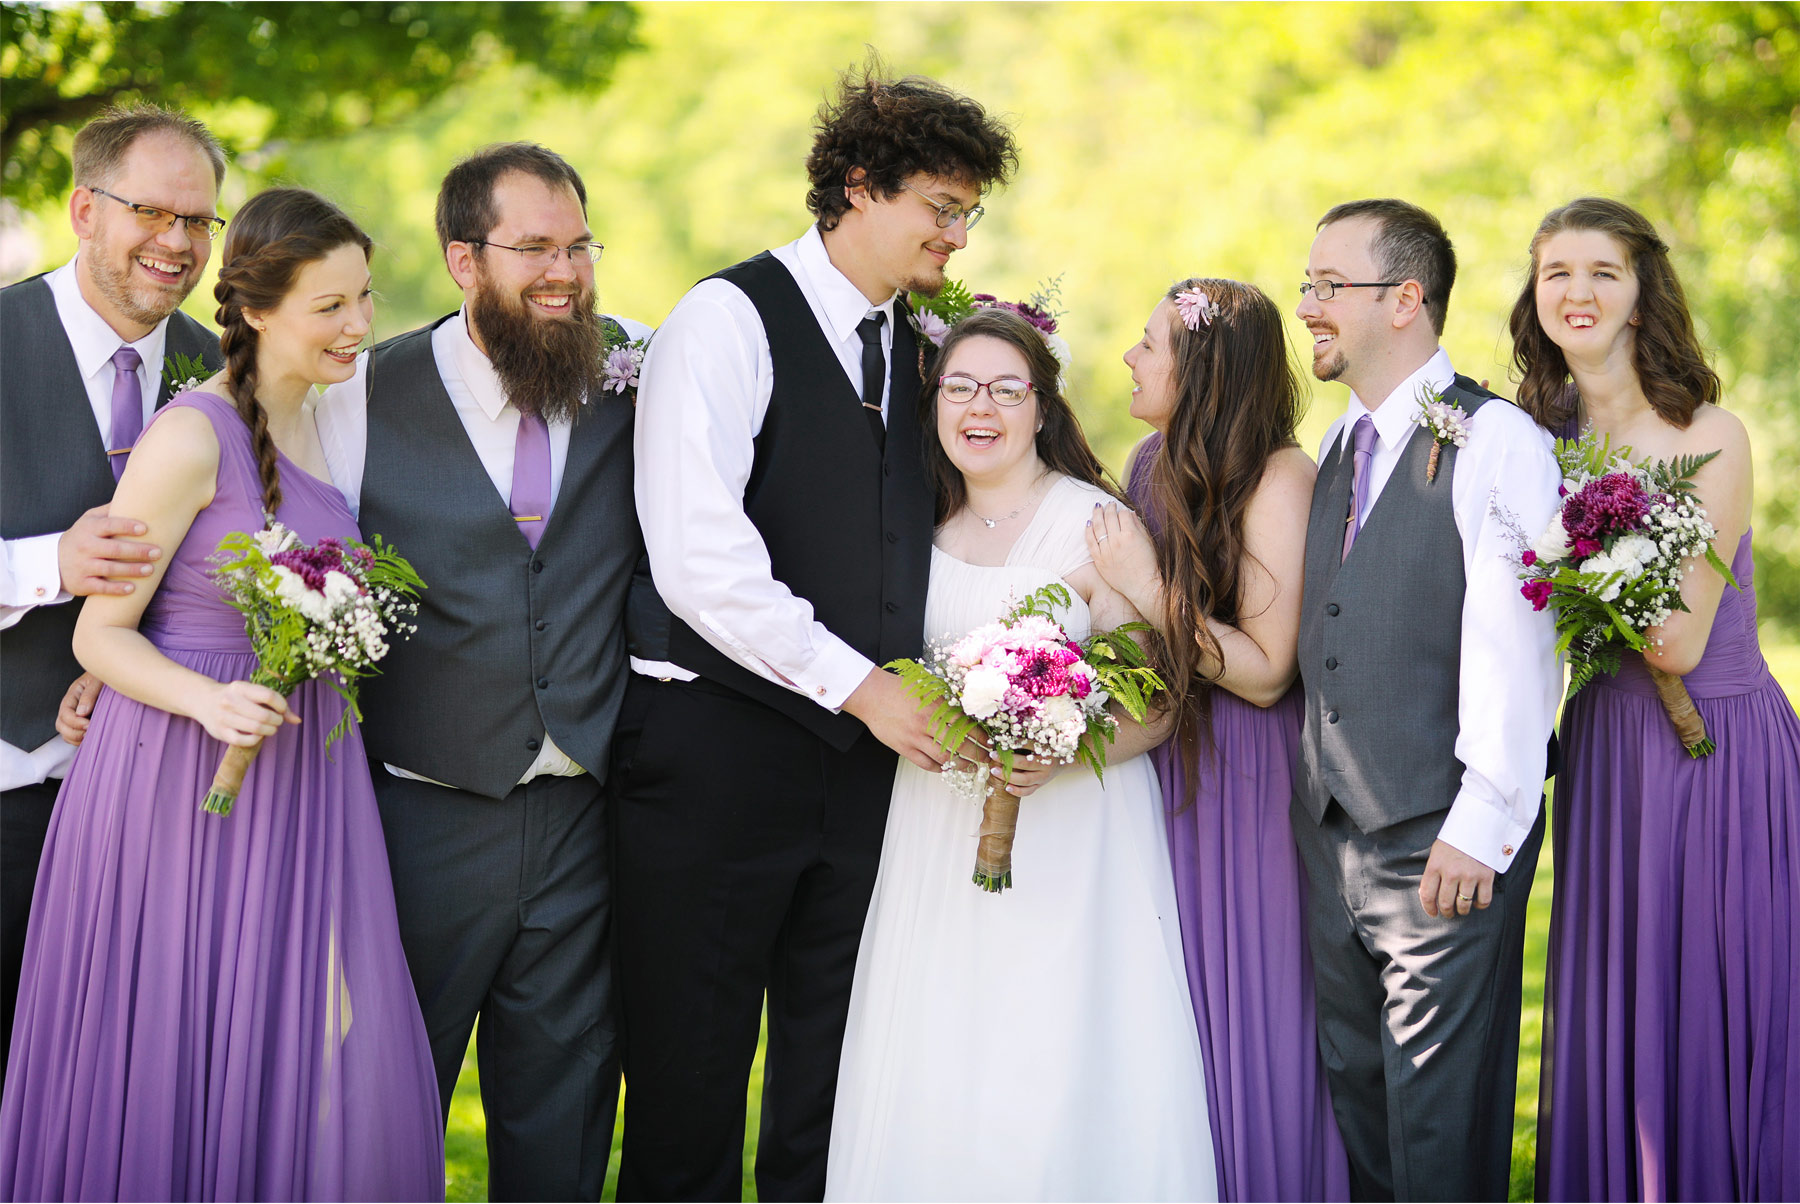 08-Minneapolis-Minnesota-Wedding-Andrew-Vick-Photography-Summer-Bridesmaids-Groomsmen-Purple-Ashley-and-Matt.jpg